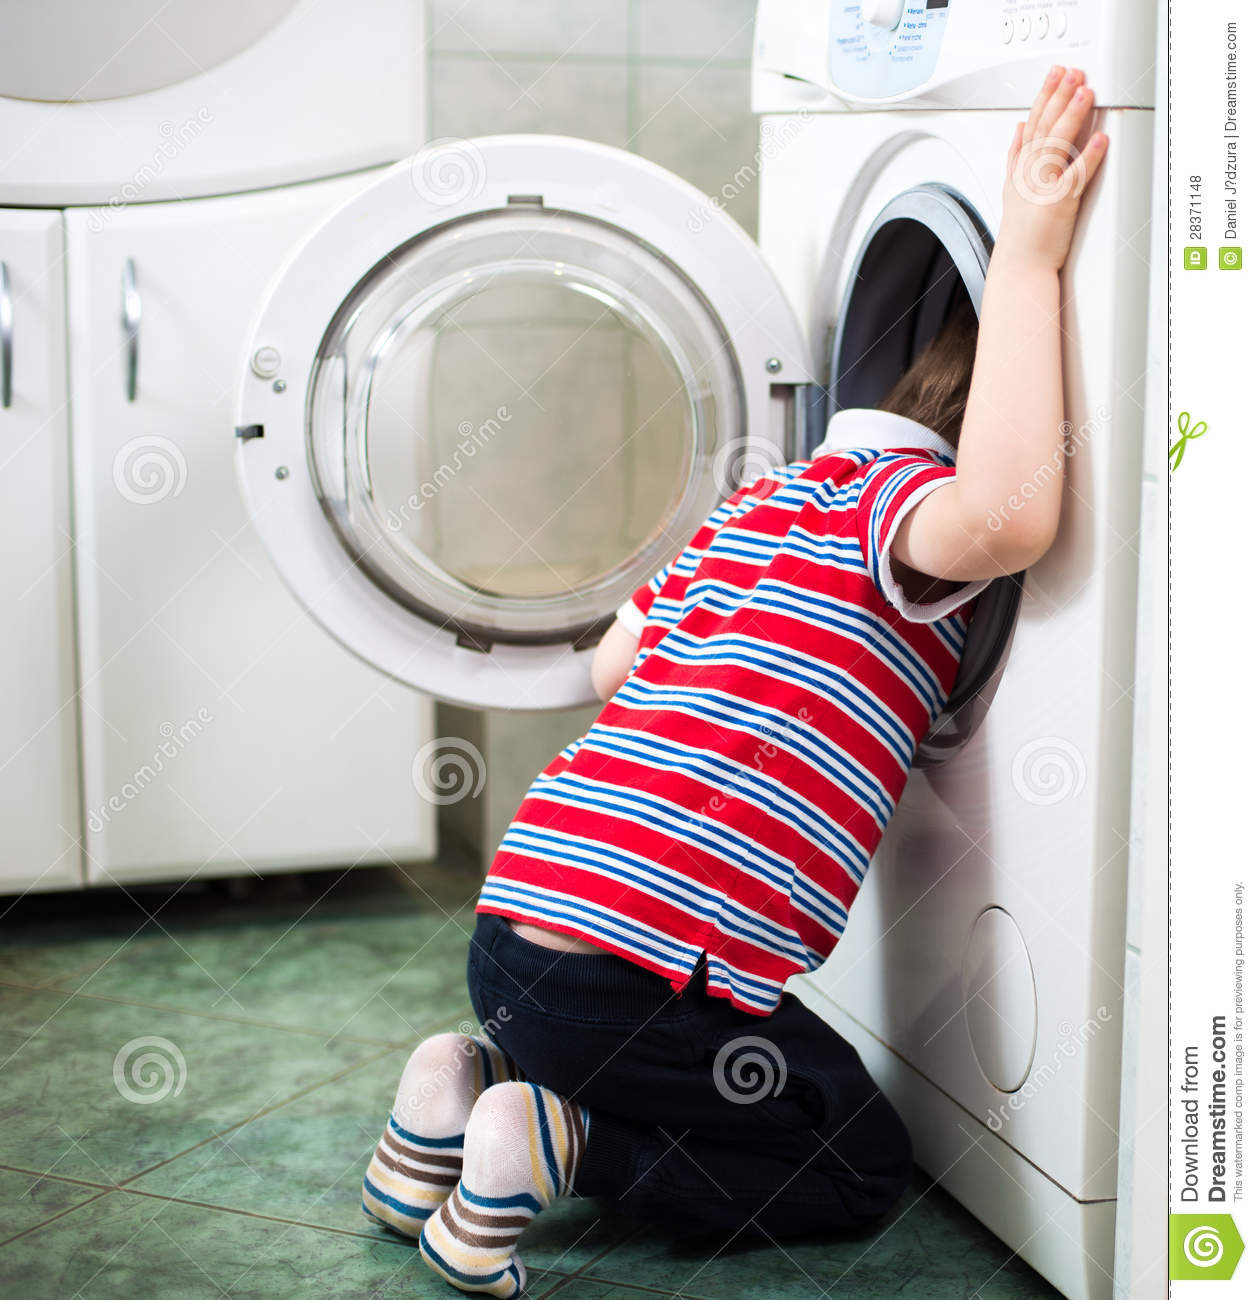 Little Baby Boy Dangerously Putting His Head Into Washing